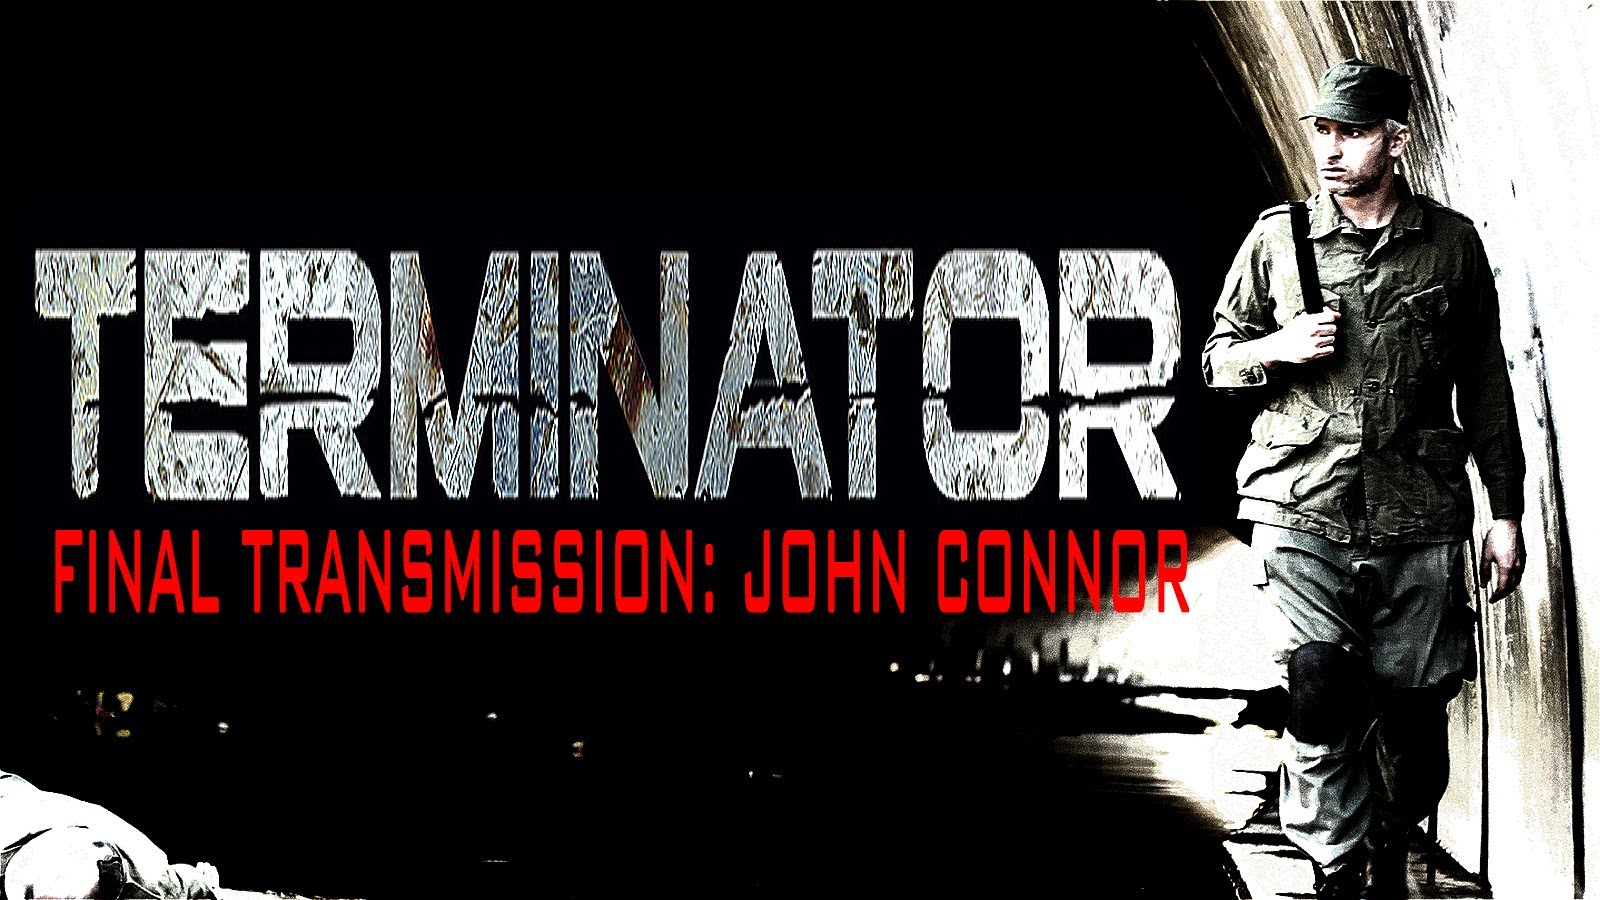 Final Transmission John Connor